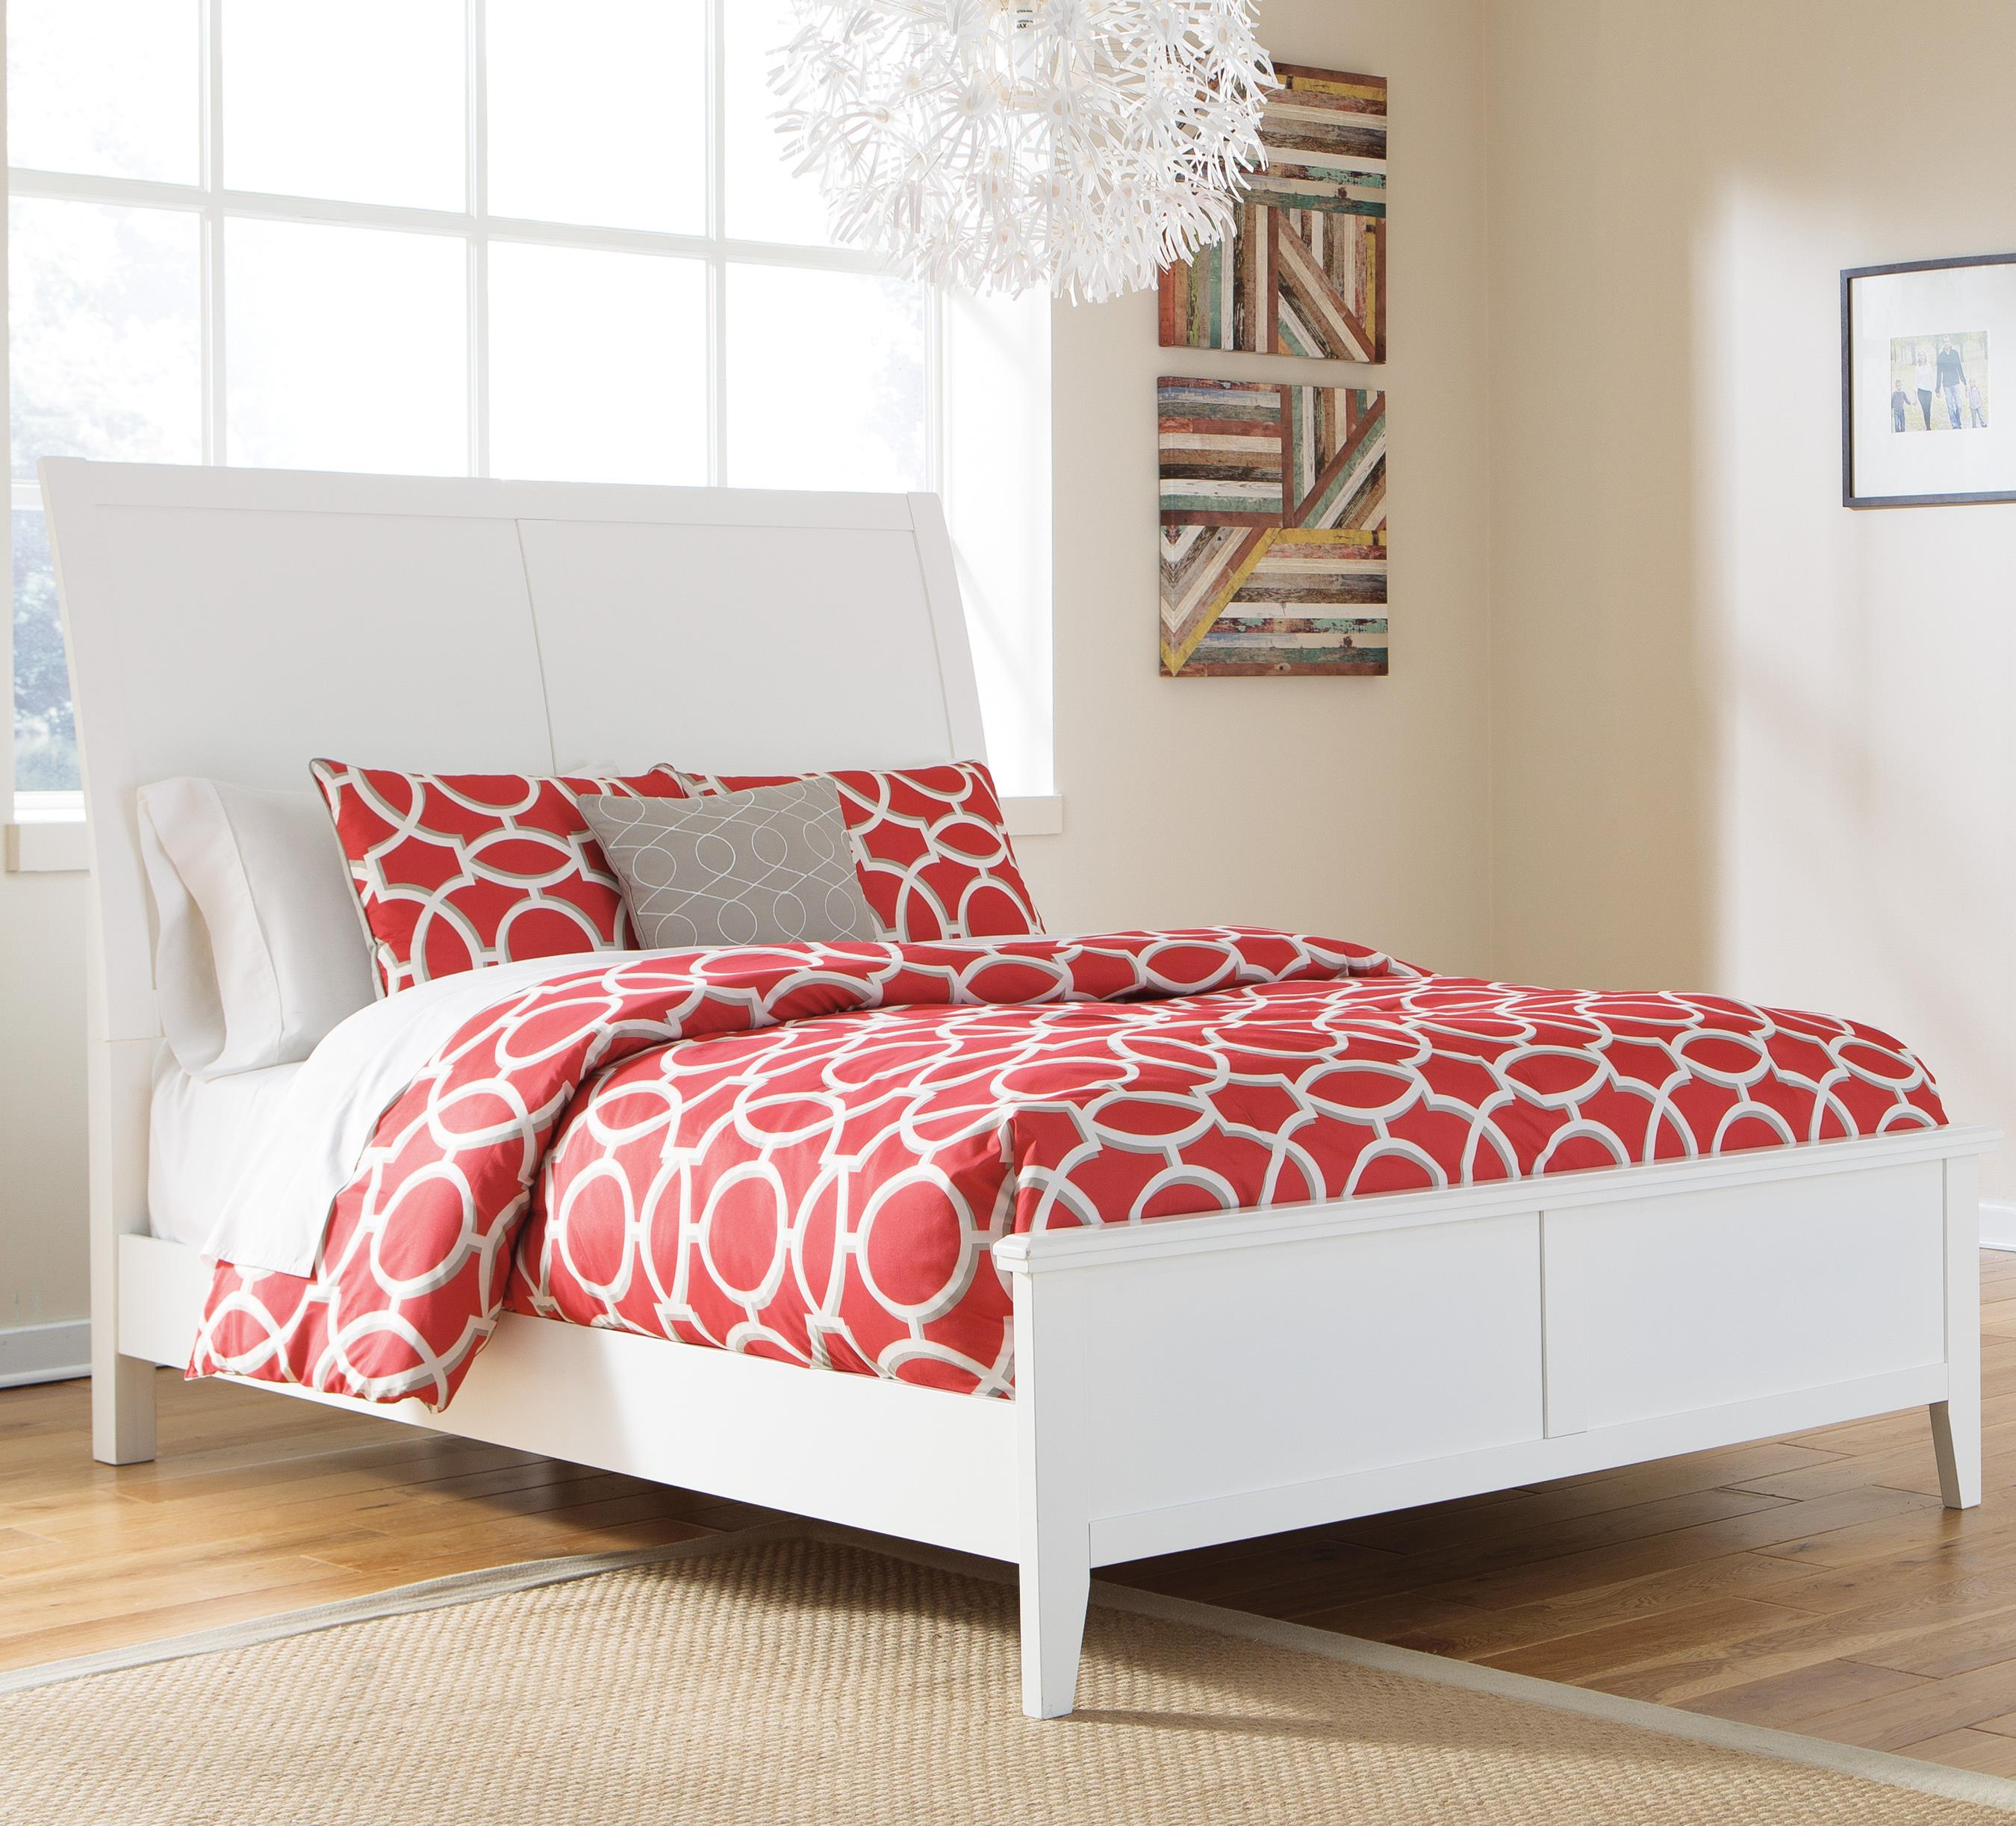 Signature Design by Ashley Langlor Queen Bed with Sleigh Headboard - Item Number: B592-57+54